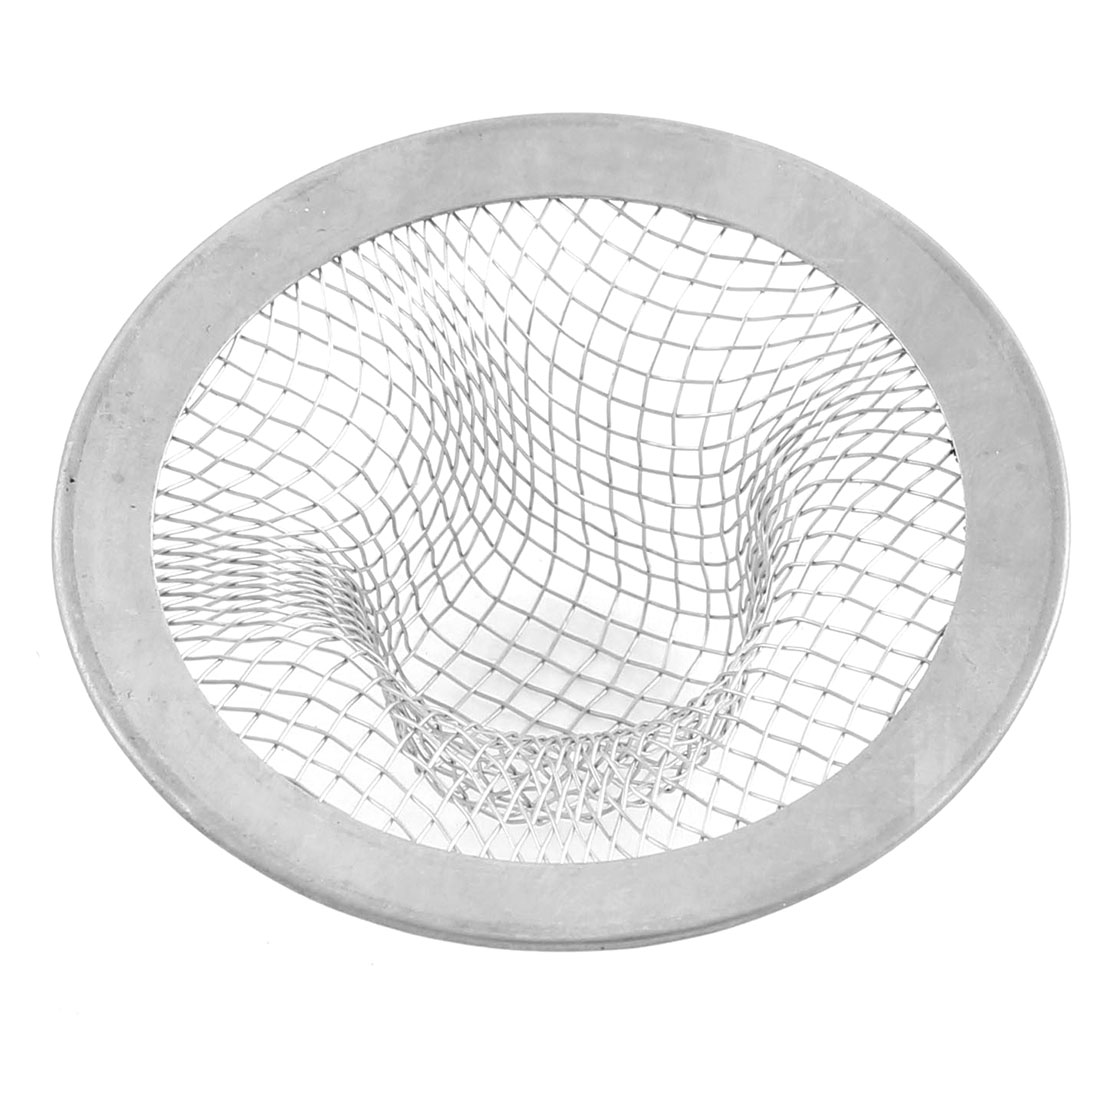 2.1 Inch Dia Stainless Steel Round Mesh Square Hole Sink Strainer for Bathroom